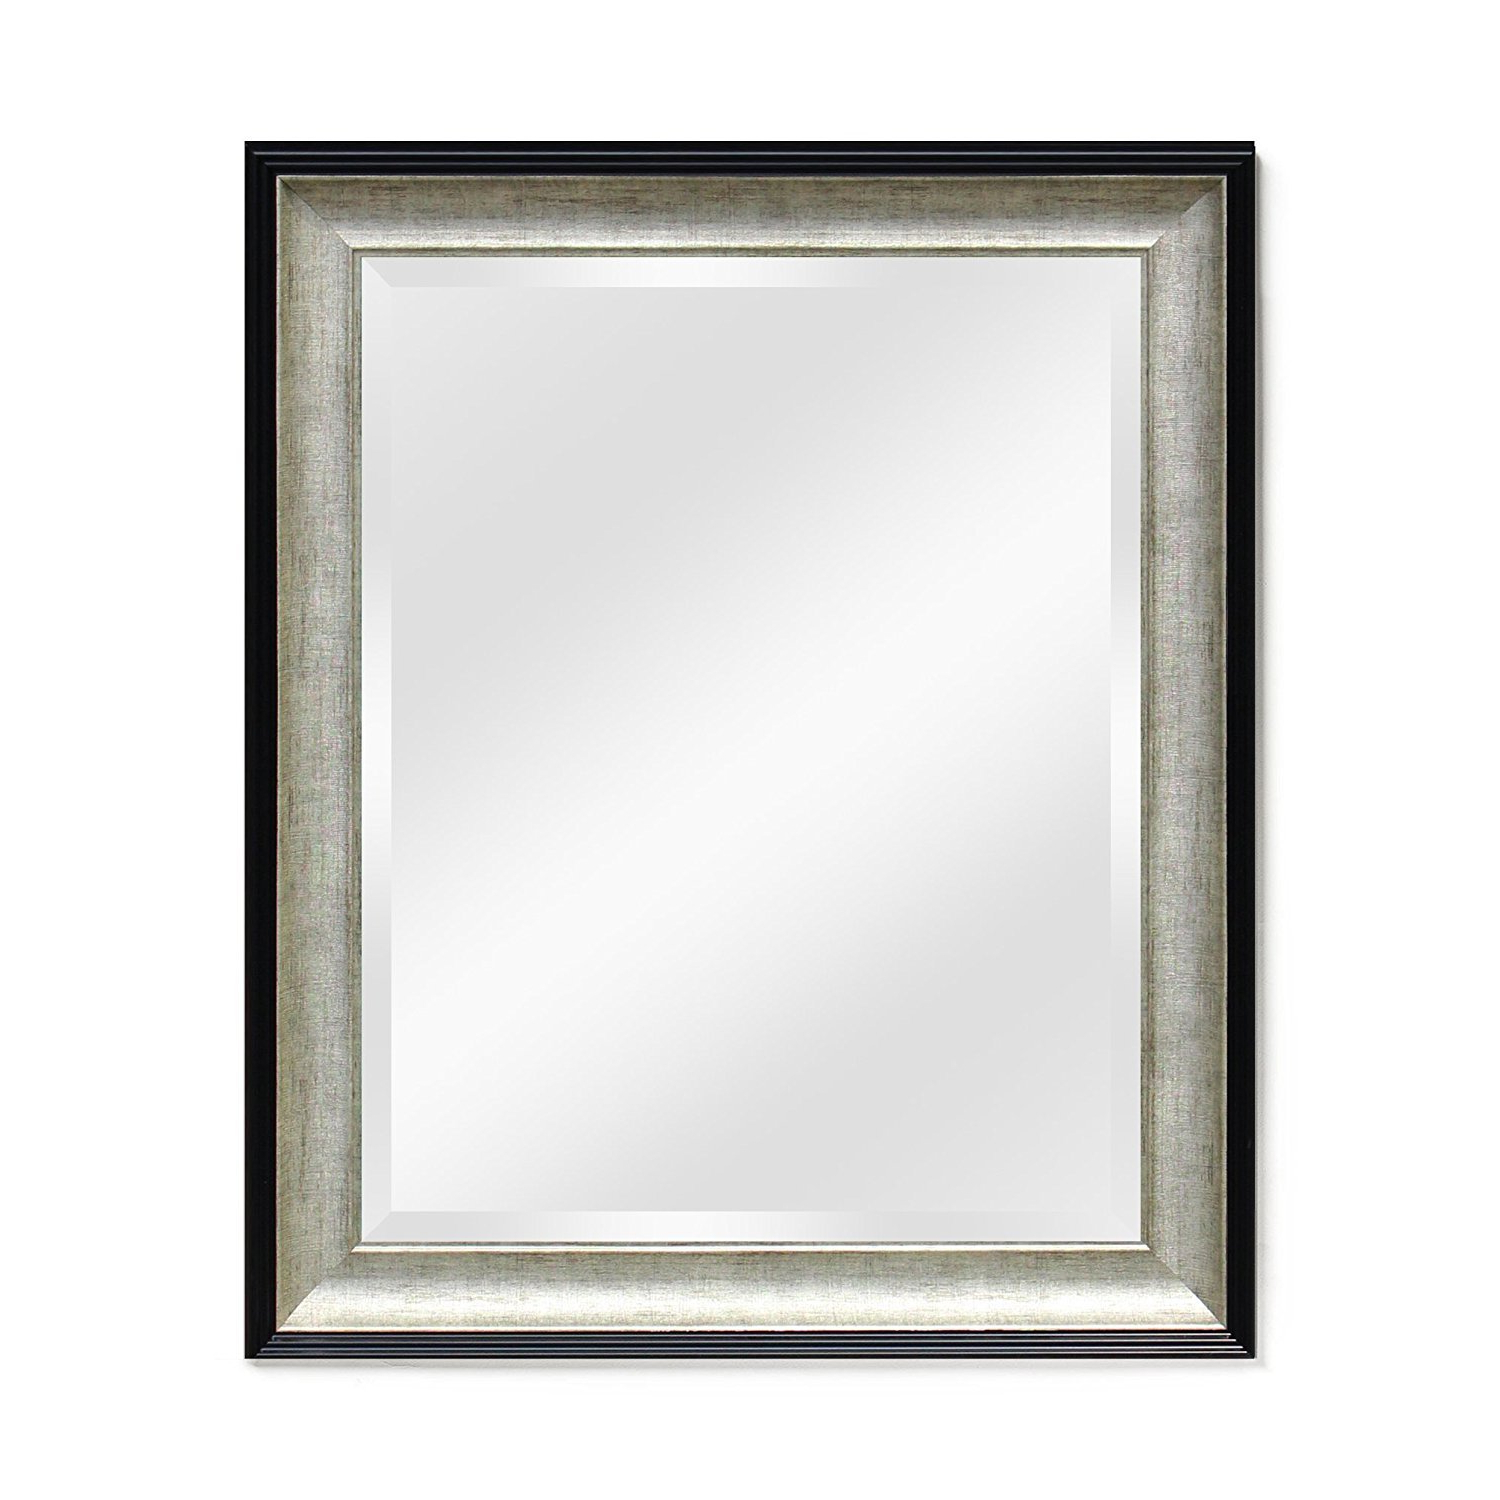 Entryway Wall Mirrors Regarding Current Wall Mirror – For Entryway Or Bathroom Wall Mounted Black Mirrors Ecohome (26x32, Black/silver) (View 10 of 20)